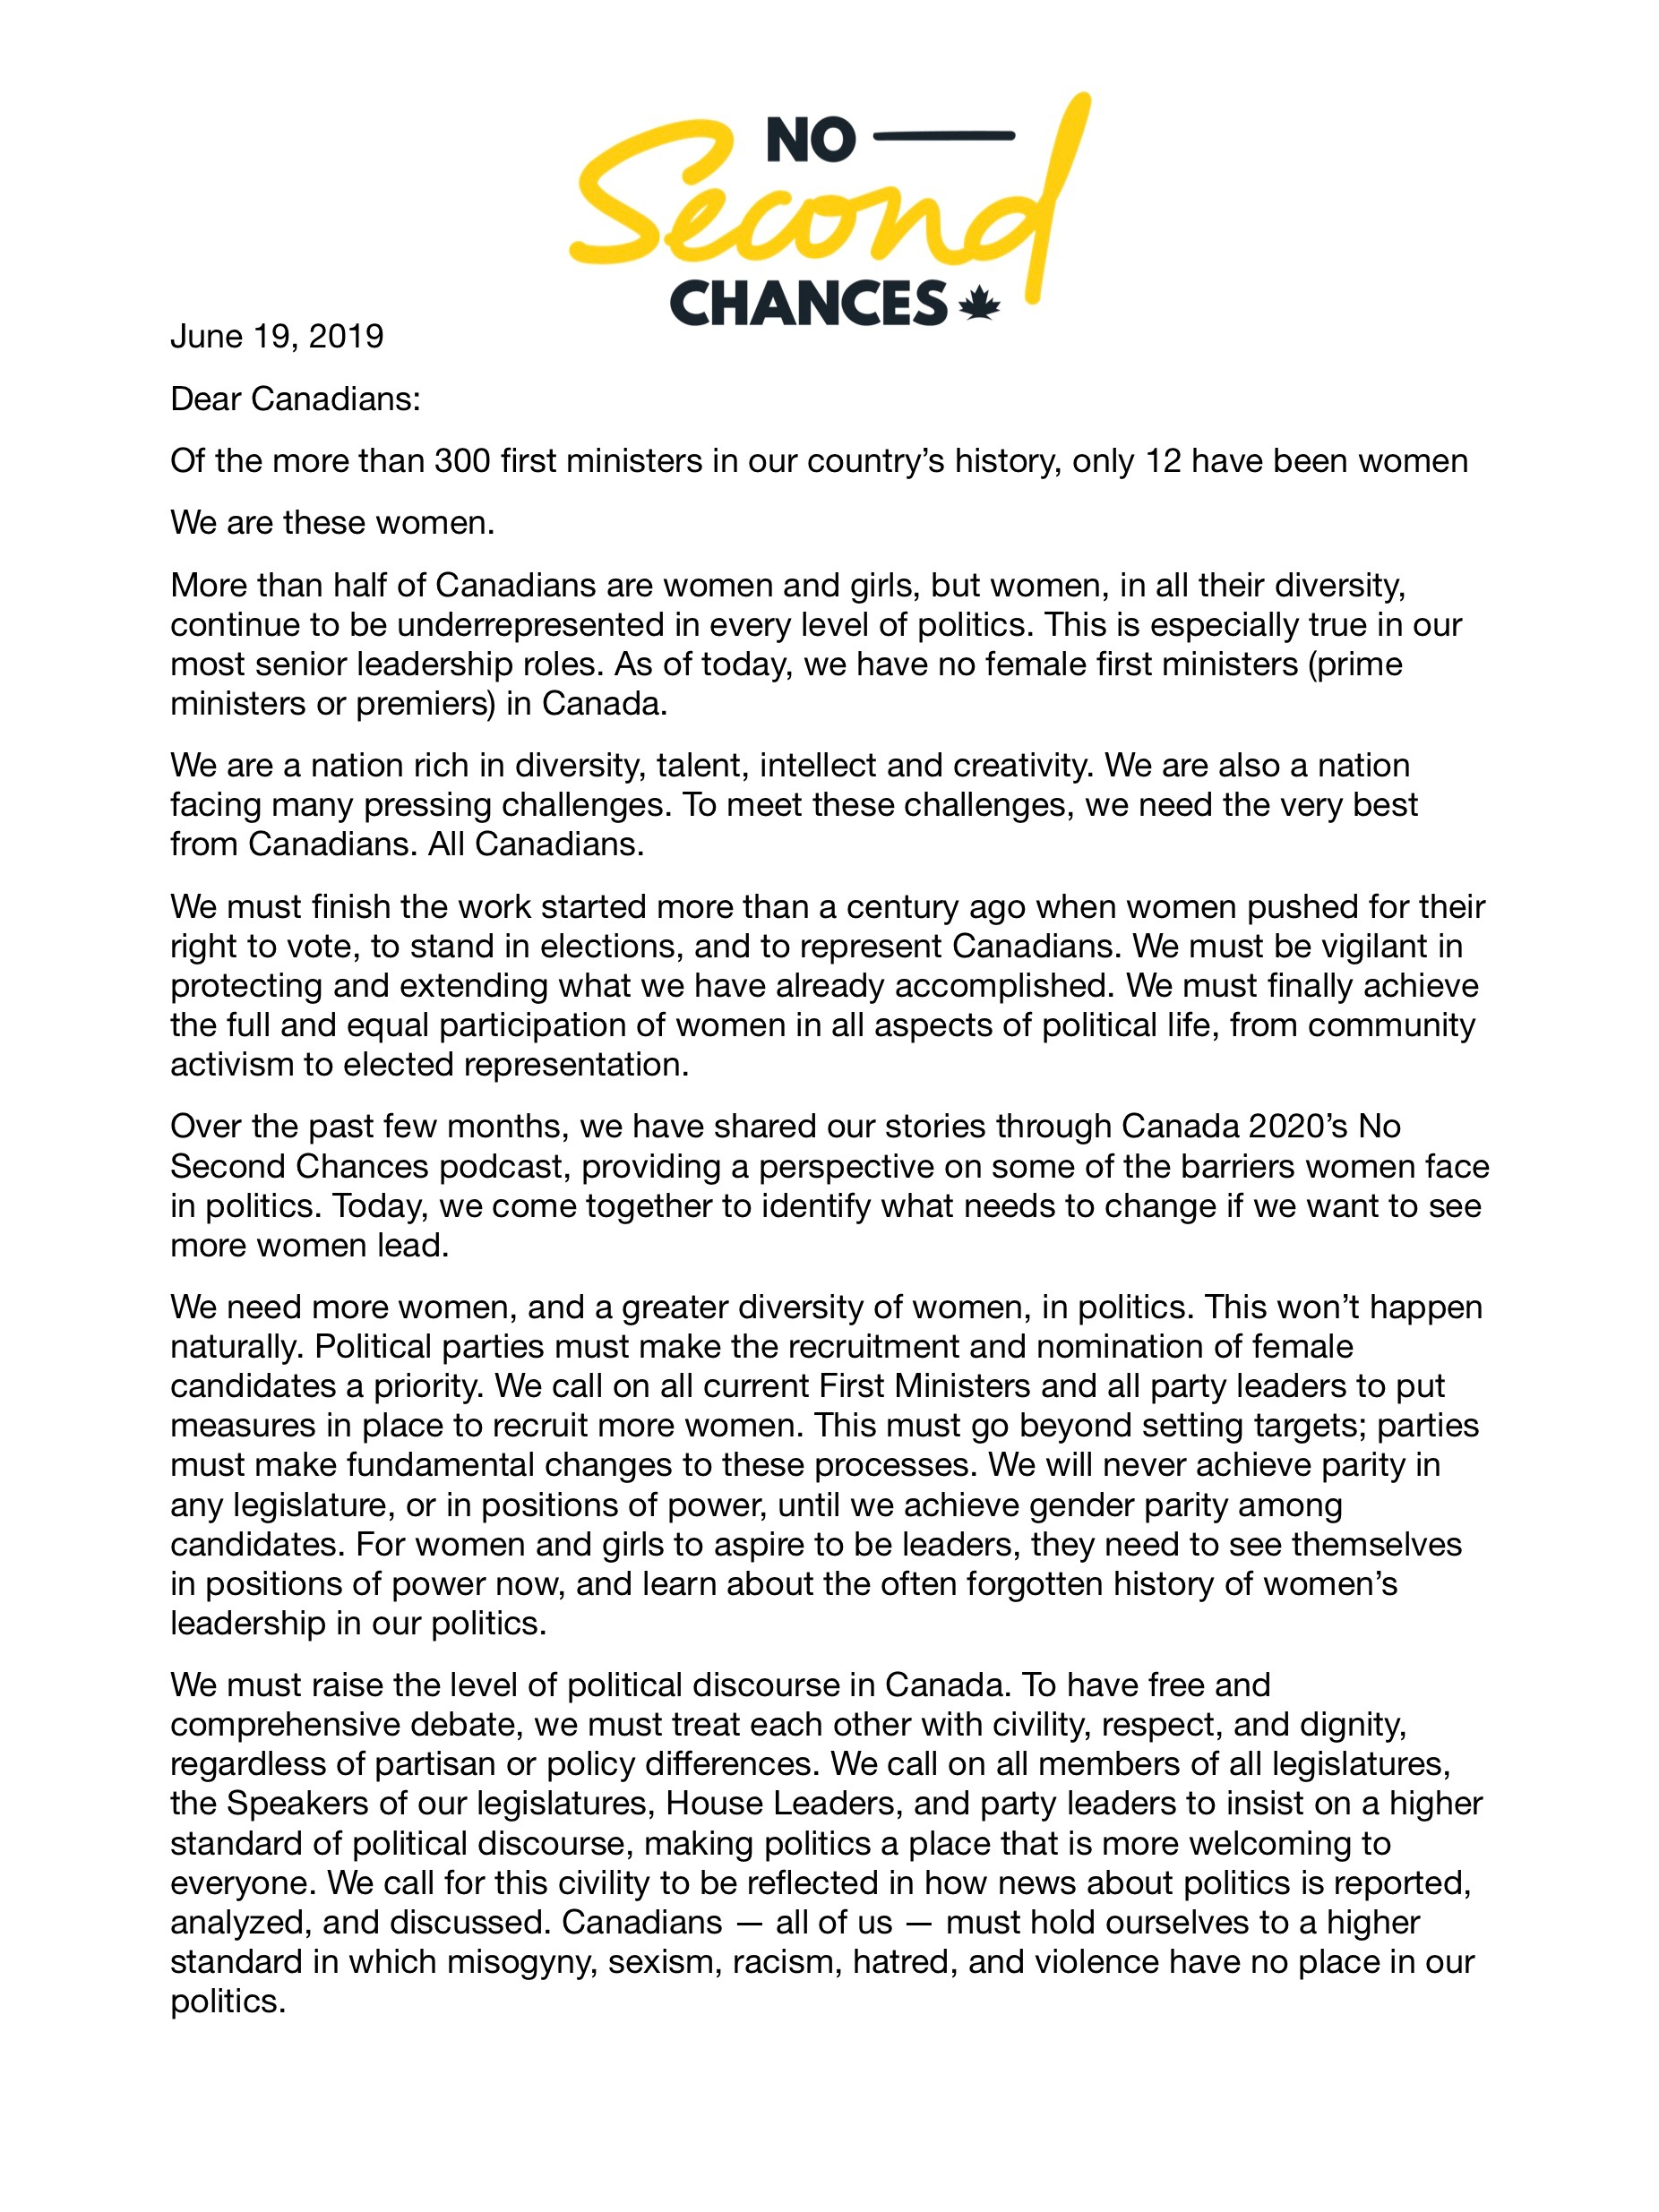 An open letter to Canadians from Canada's female First Ministers - page 1